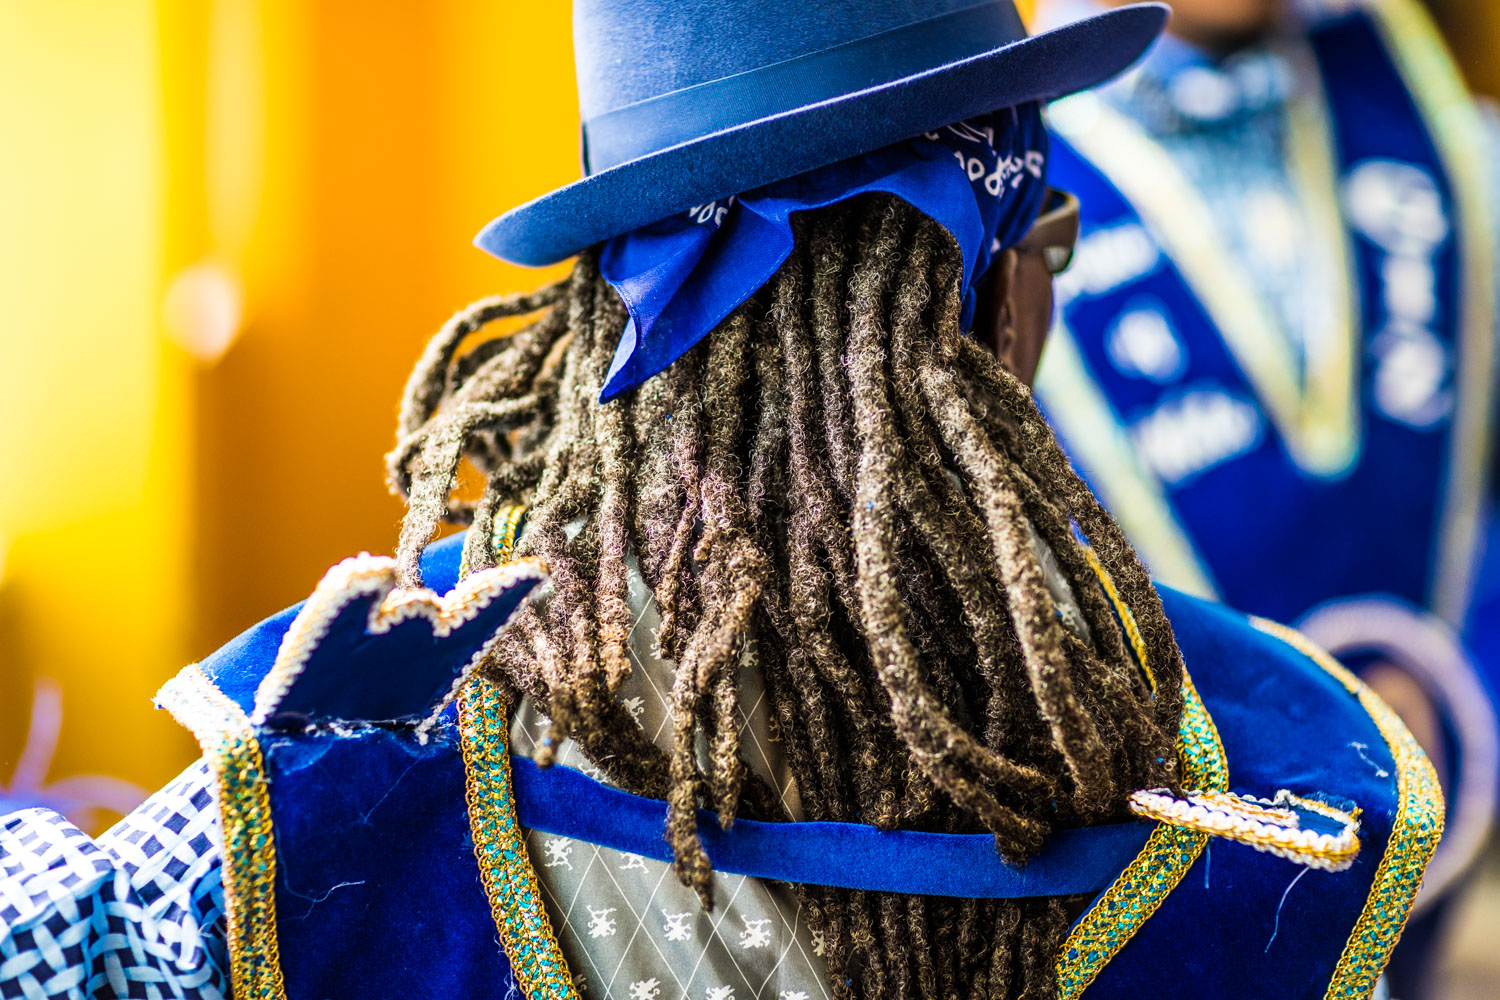 dreadlocks-hair-style-zack-smith-photography-new-orleans-street-culture-second-line-prince-of-wales